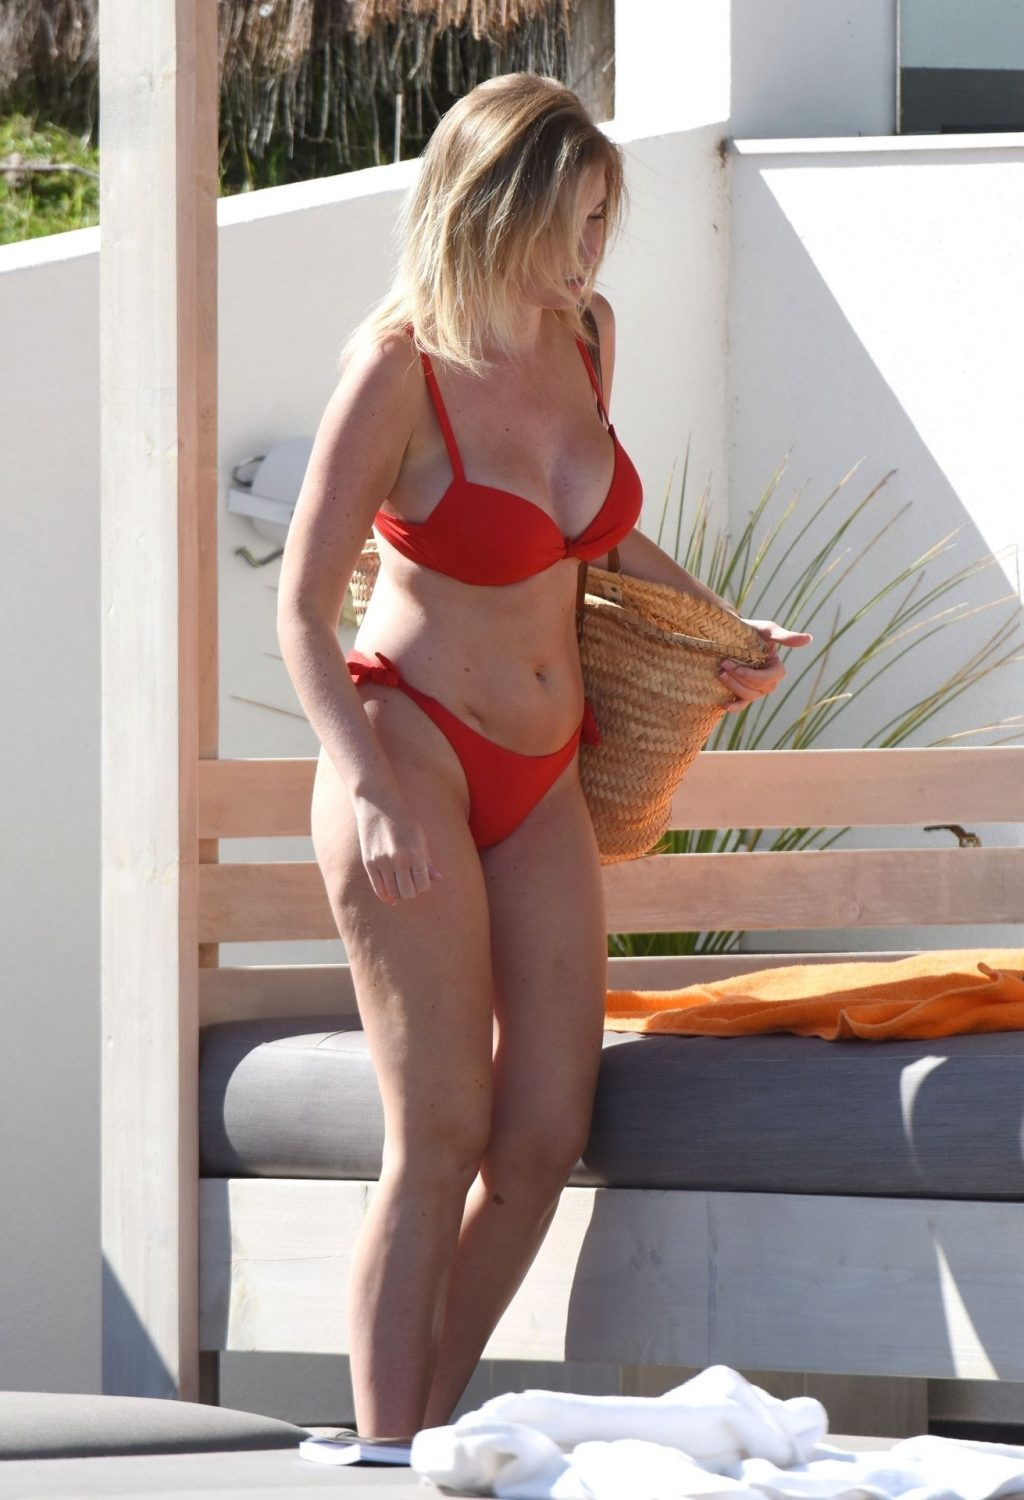 Amy Hart Stuns in a Fiery Red Bikini Soaking in the Sweltering Heat on Holiday in Portugal (31 Photos)